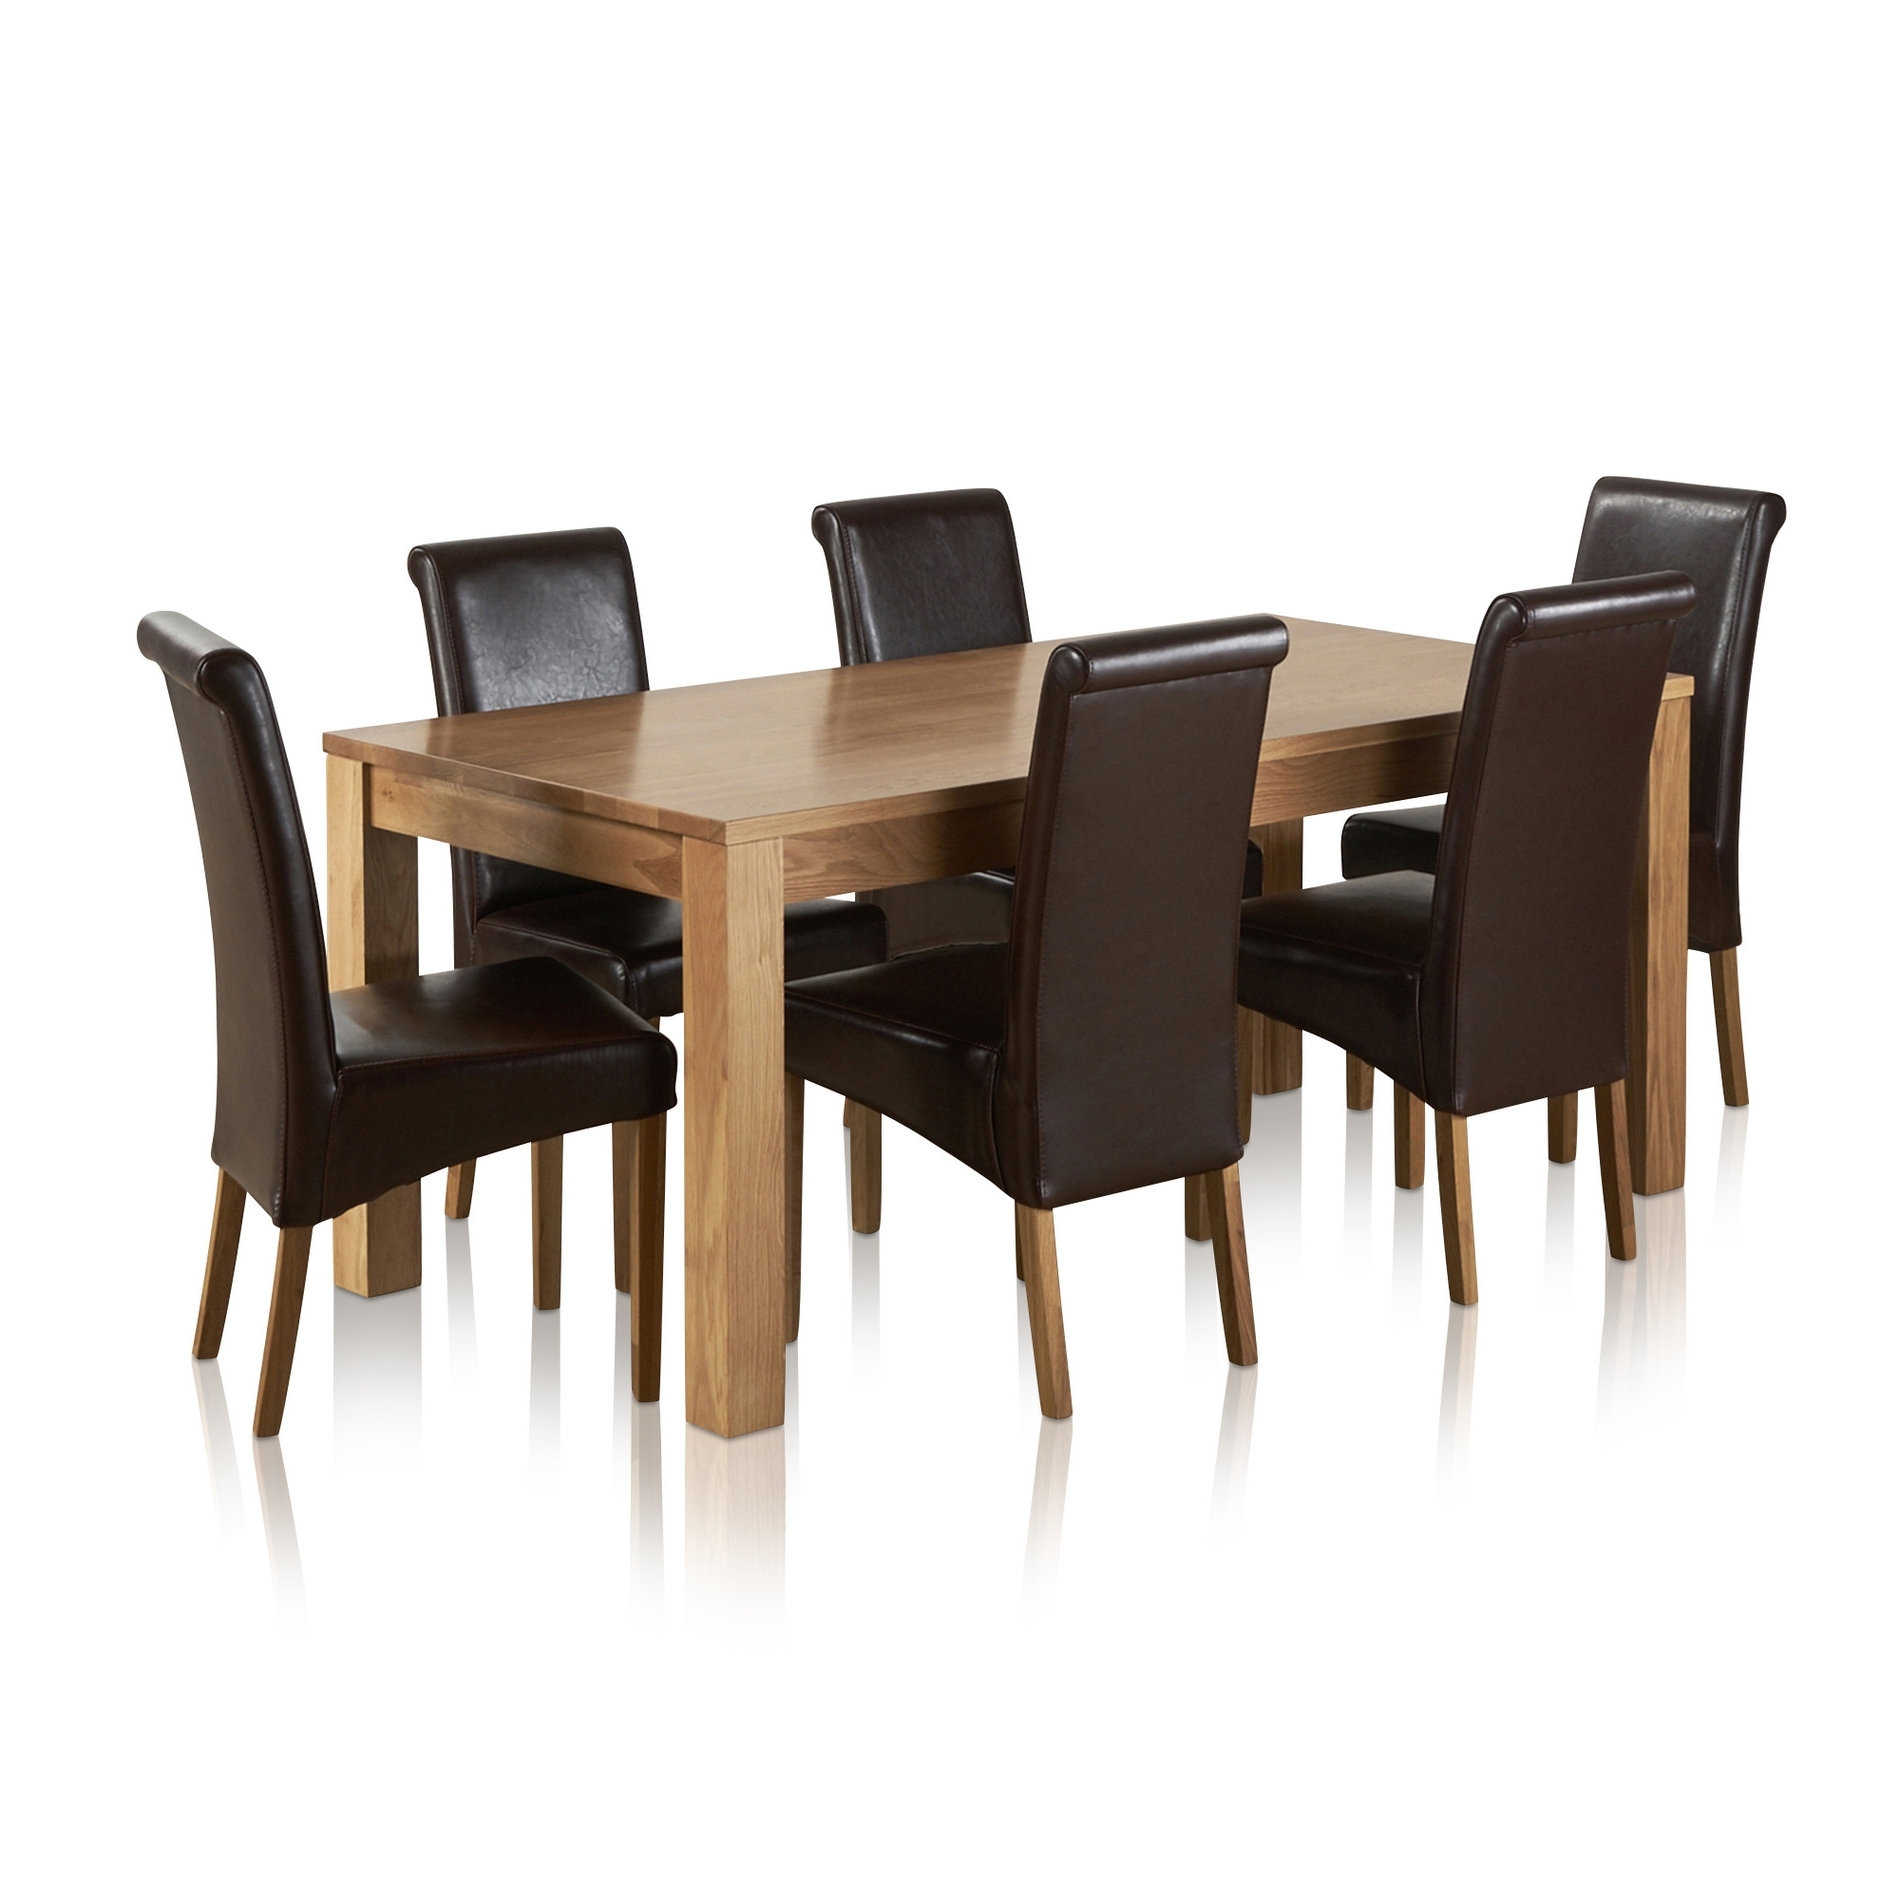 3Ft Dining Tables With Regard To Recent Oakdale Natural Solid Oak 6Ft Dining Table 6 Brown Leather Chairs (View 5 of 25)